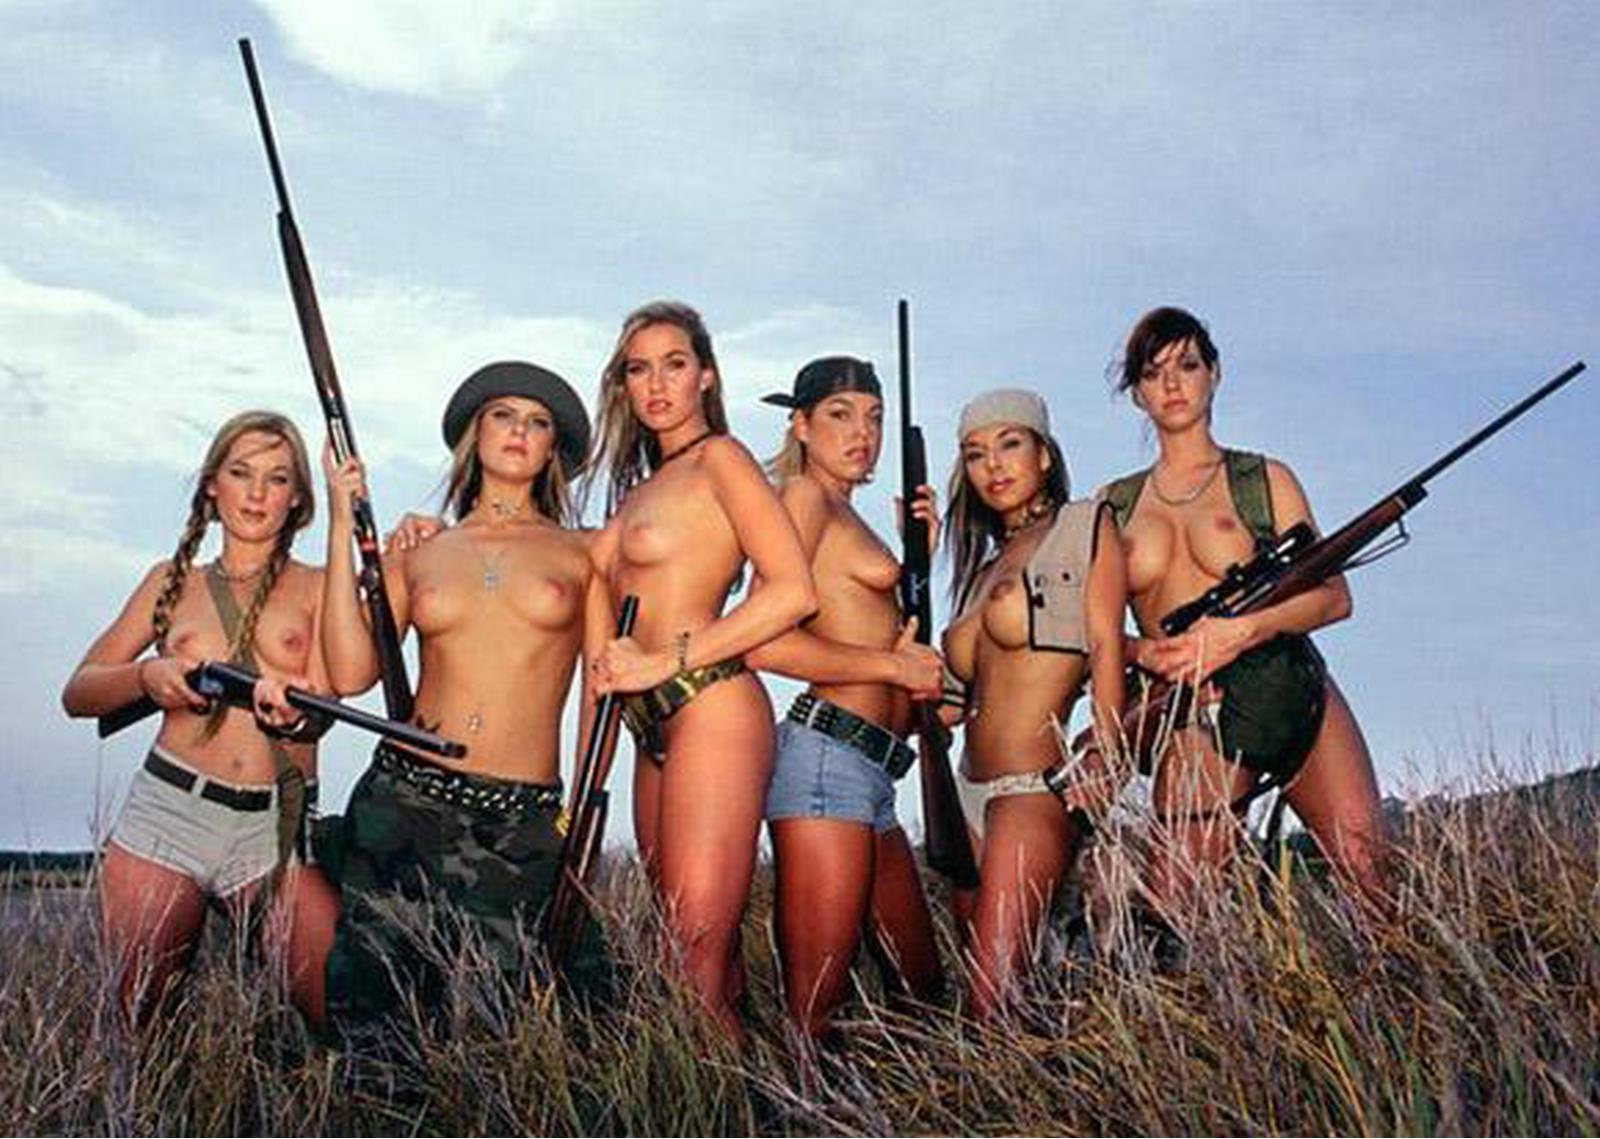 Naked bow hunting girl erotic pic